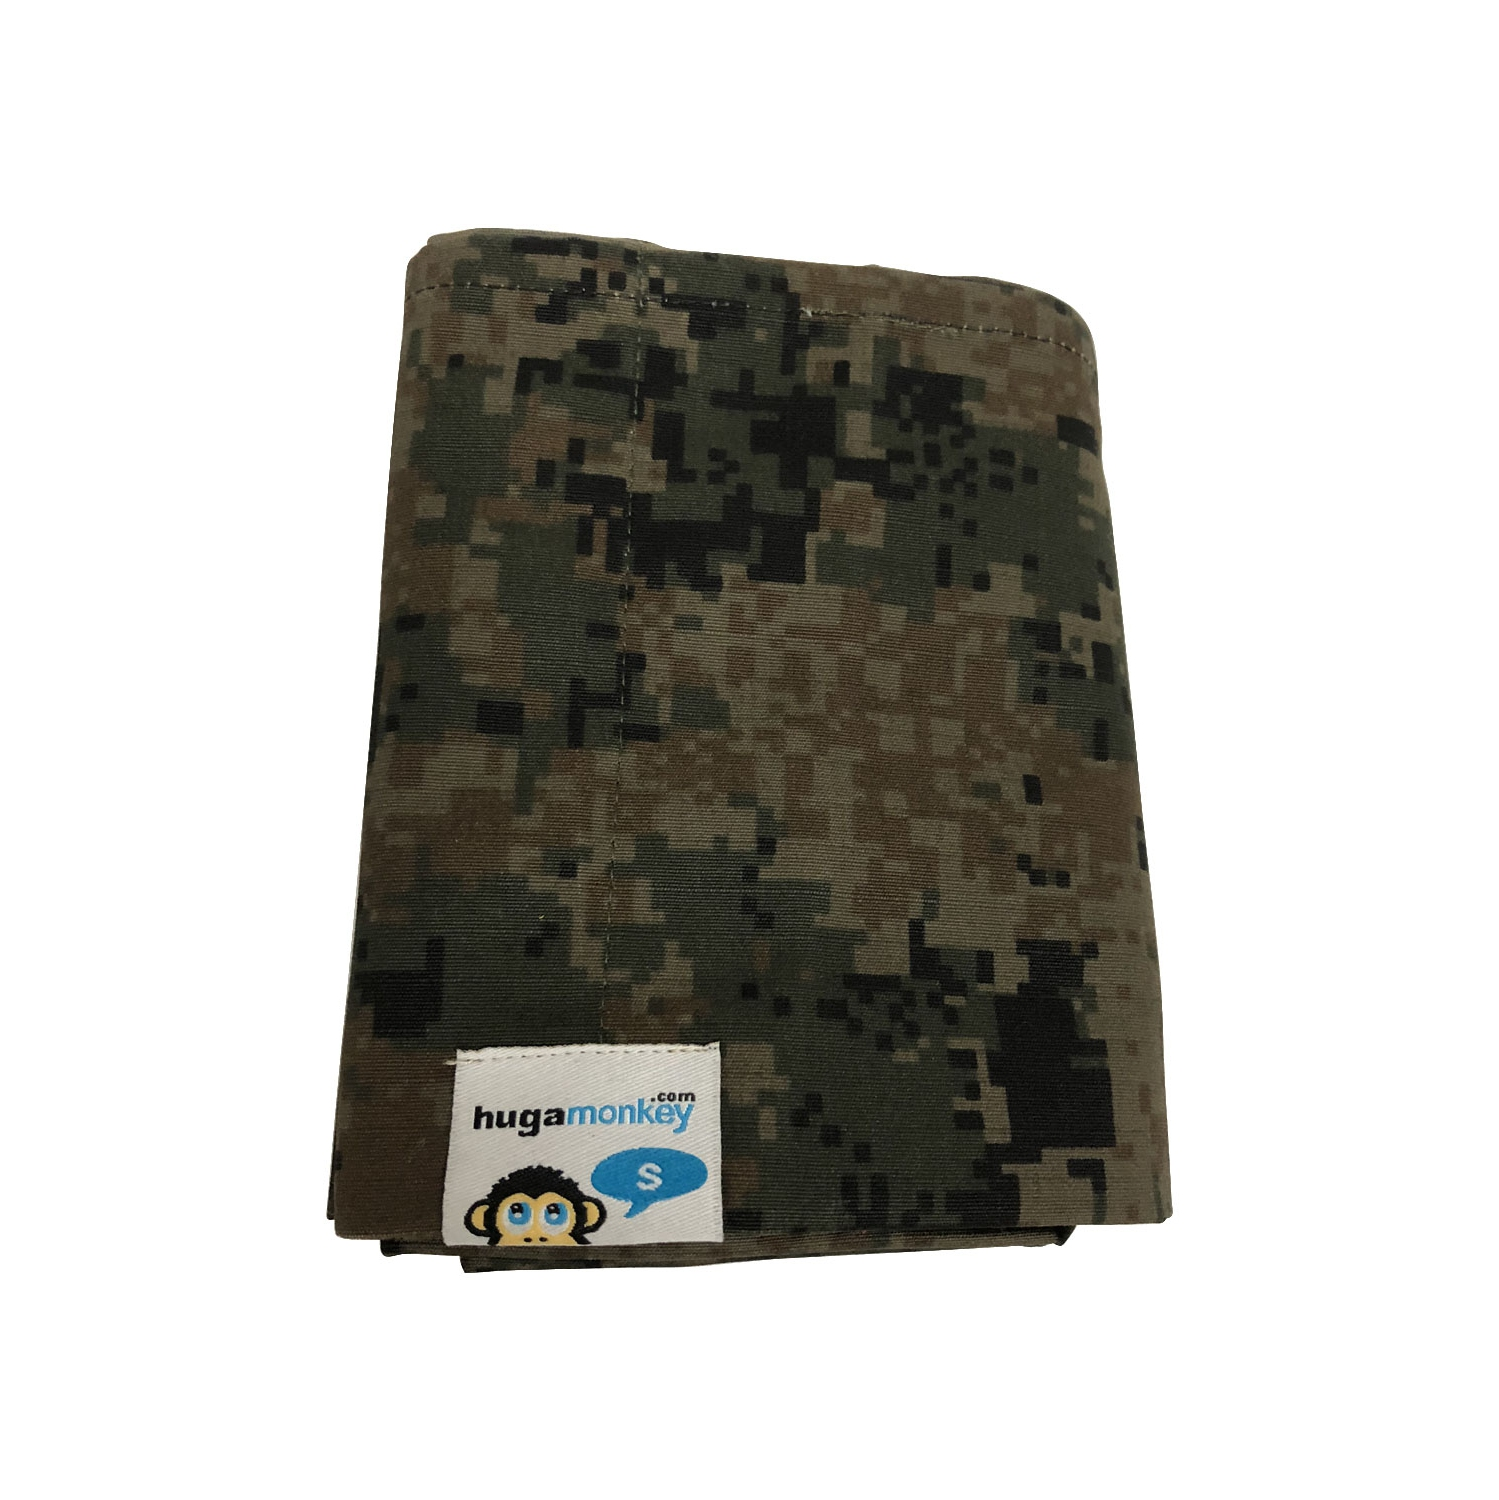 67e5007d2c5 HugaMonkey Camouflage Dark Green Military Baby Sling - Small   Baby Slings  - Best Buy Canada